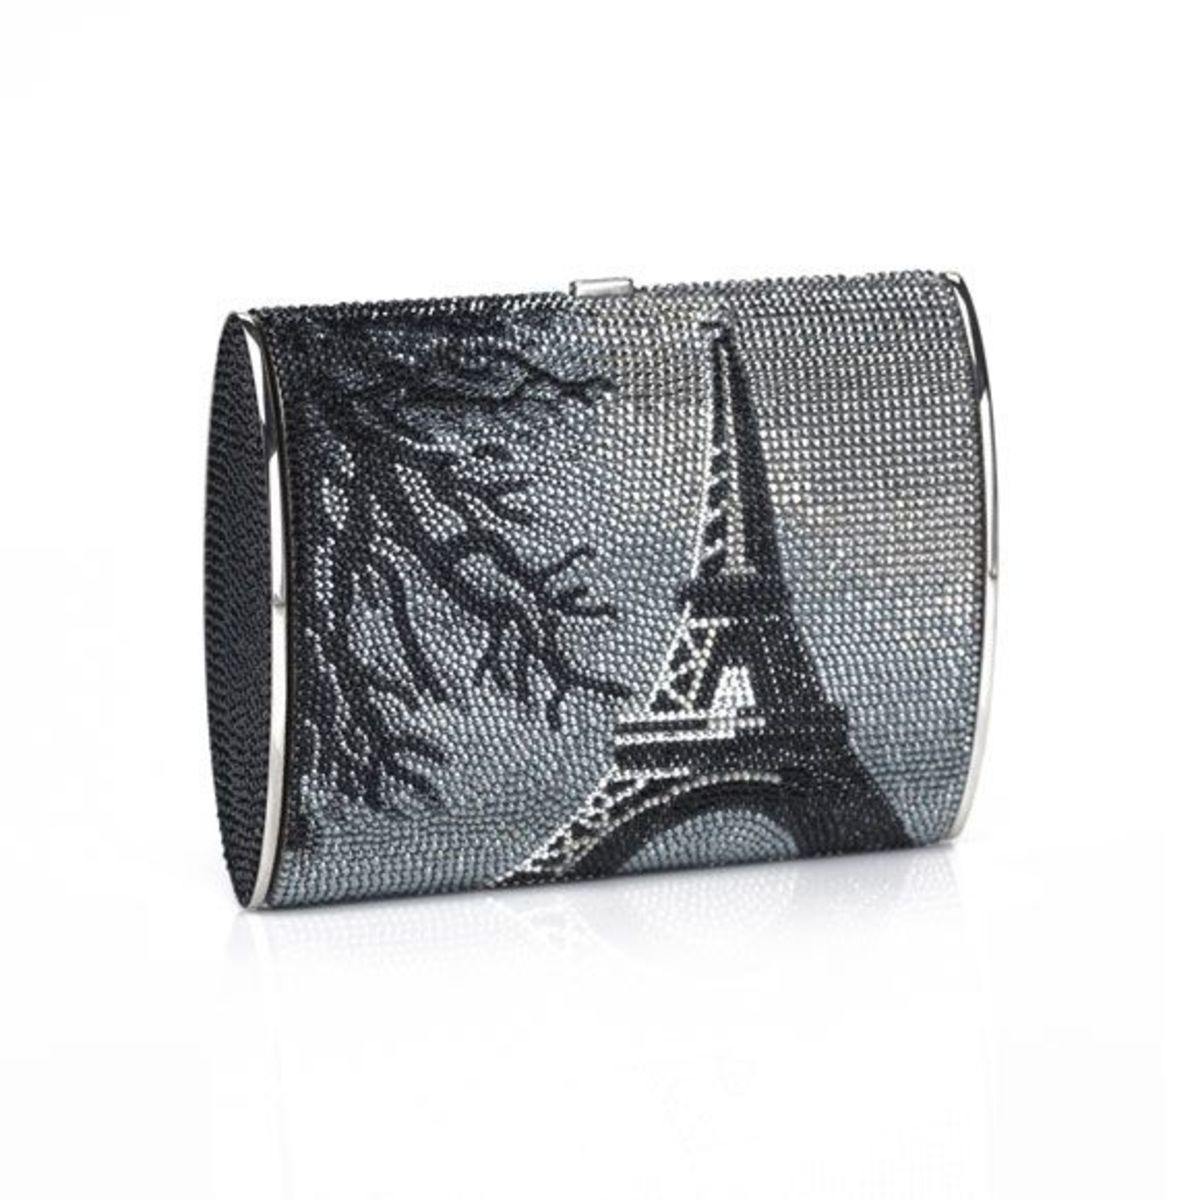 PARISPrice: $3,495From the limited edition Cities Collection, the Paris bag features an iconic city scene in a sophisticated palette of blues and greys. Also available- Hong Kong, London, New York. Very classy, sophisticated look, and what better